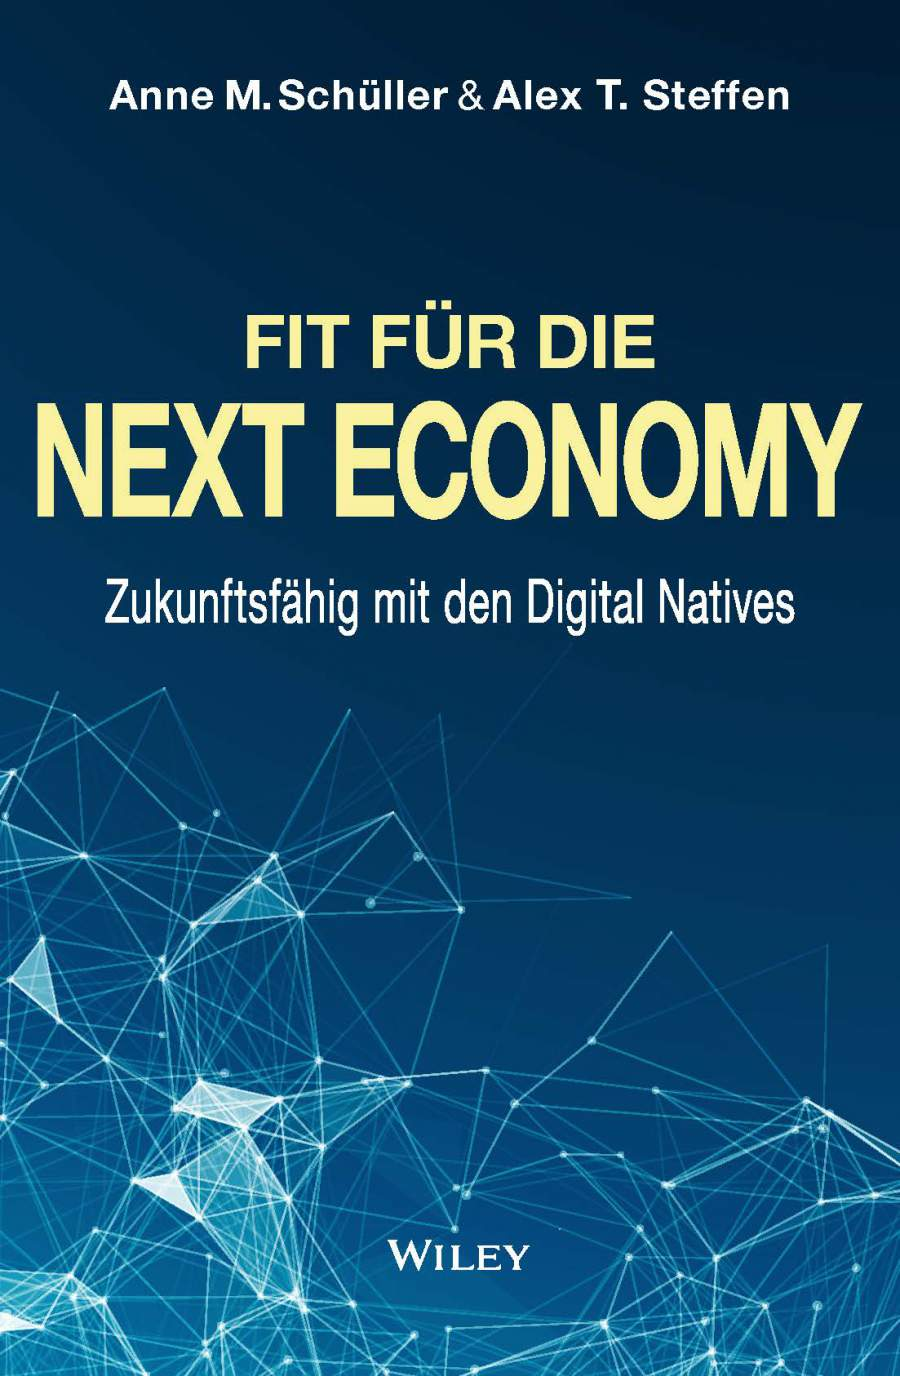 Für für die Next Economy, Zukunftsfähig mit den Digital Natives, Digital Natives, Millennials, Generation Y, Anne M Schüller, Alex T. Steffen, Buchcover, Wiley, Touchpoints montags, Young Leaders, Old Economy